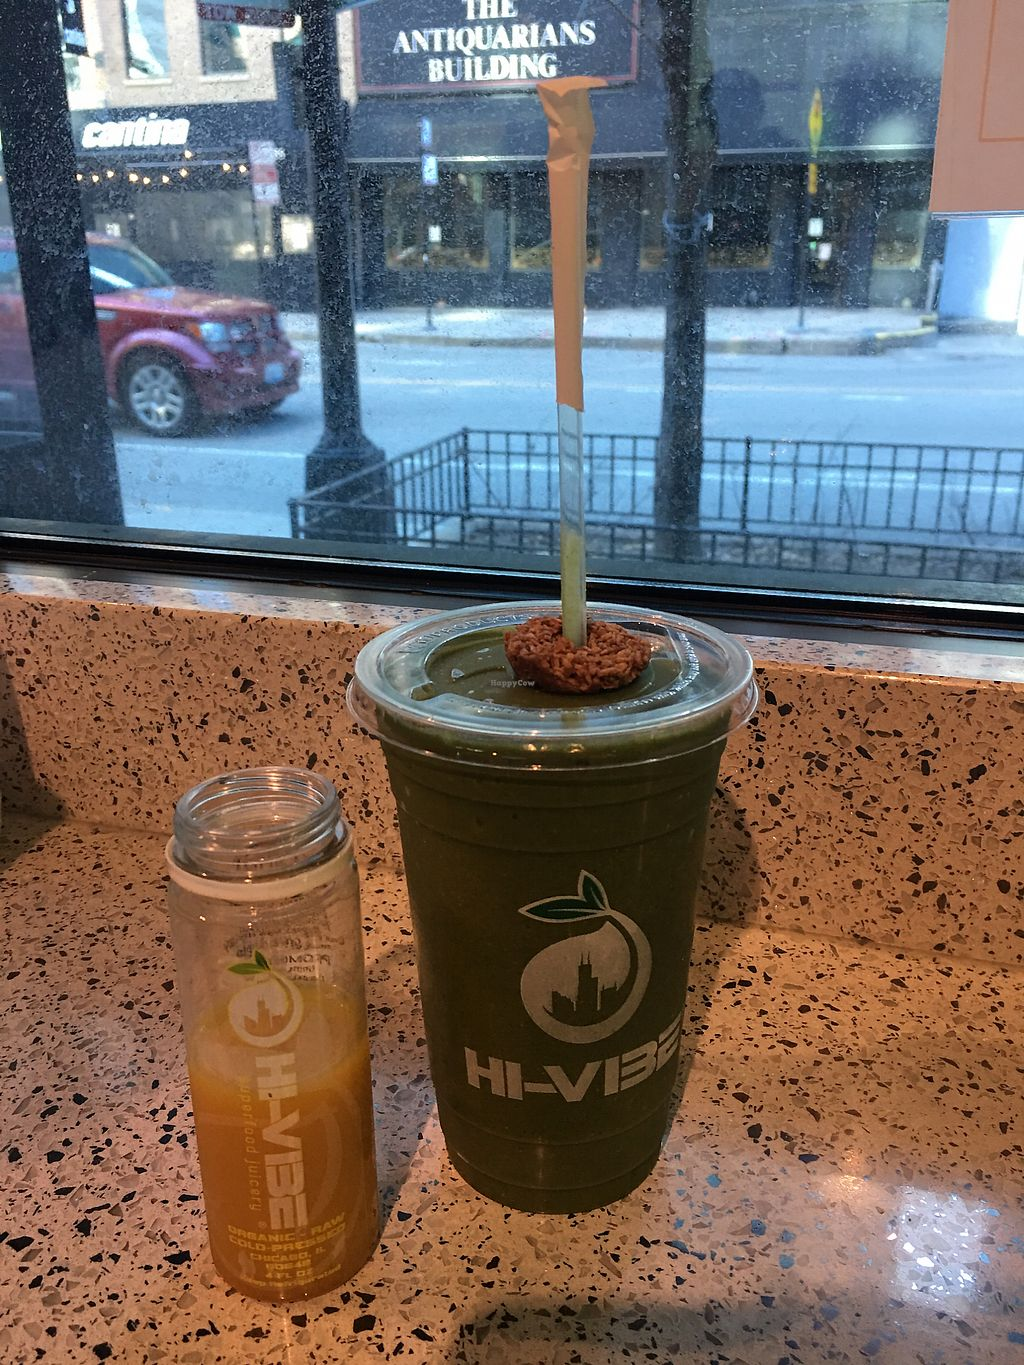 """Photo of Hi-Vibe Superfood Juicery  by <a href=""""/members/profile/GeorgiaLippi"""">GeorgiaLippi</a> <br/>green velvet! <br/> March 10, 2018  - <a href='/contact/abuse/image/92316/368930'>Report</a>"""